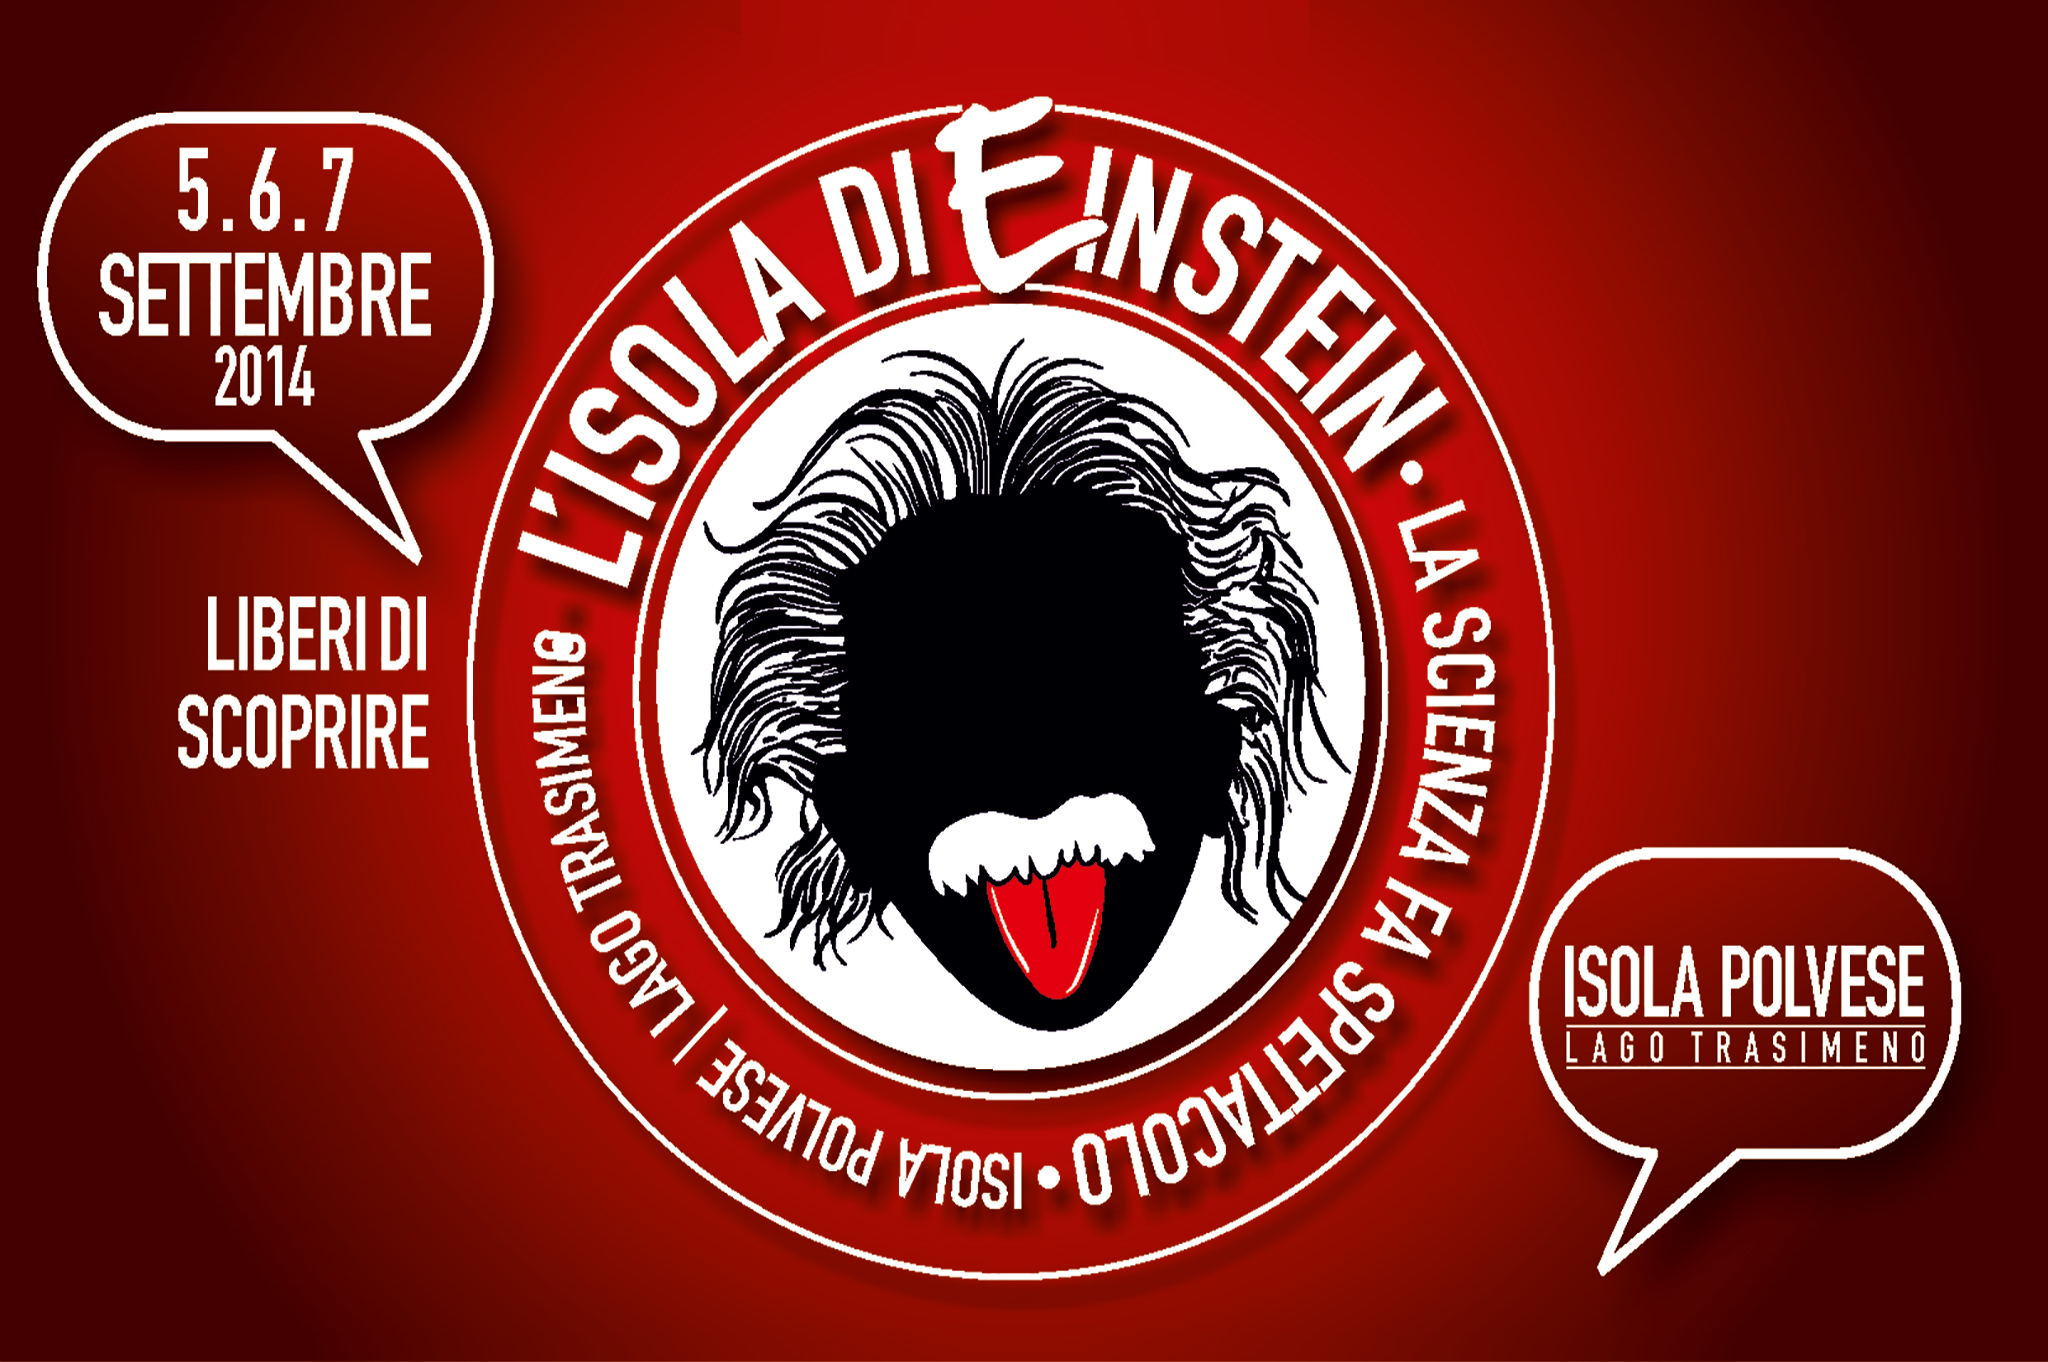 https://www.isoladieinstein.it/wp-content/uploads/2015/12/edizione2014.jpg